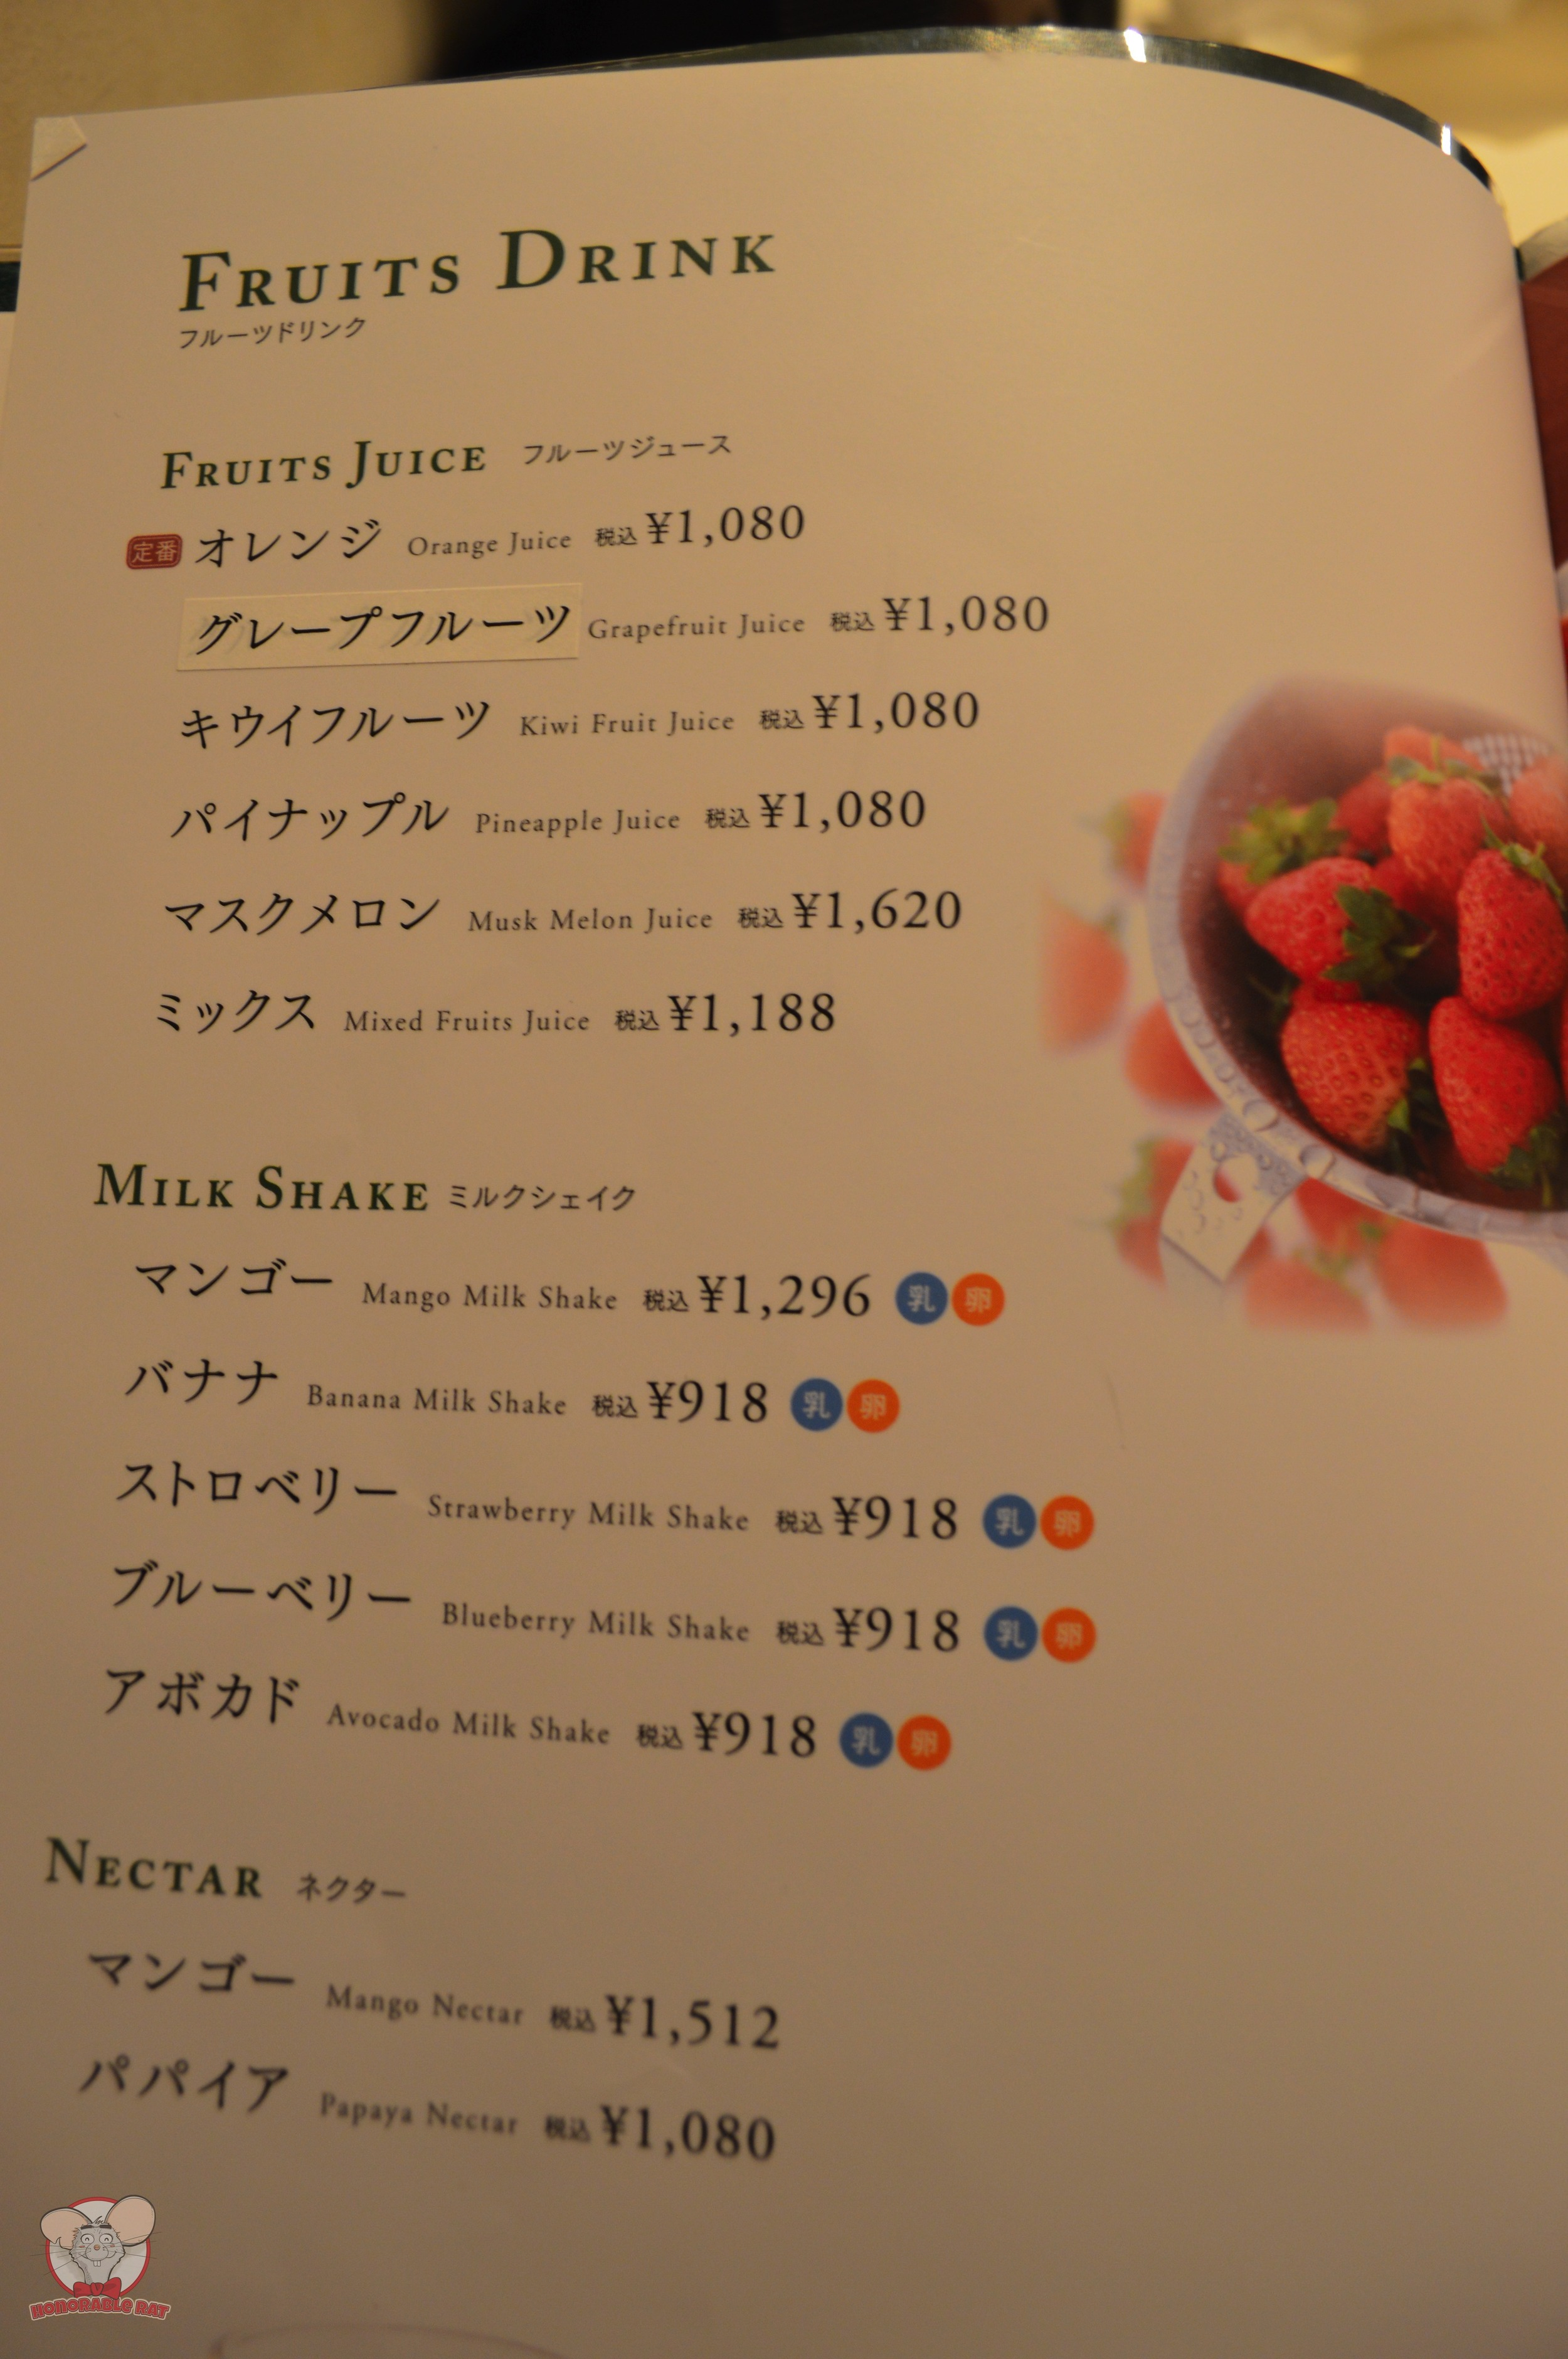 Fruits Drink